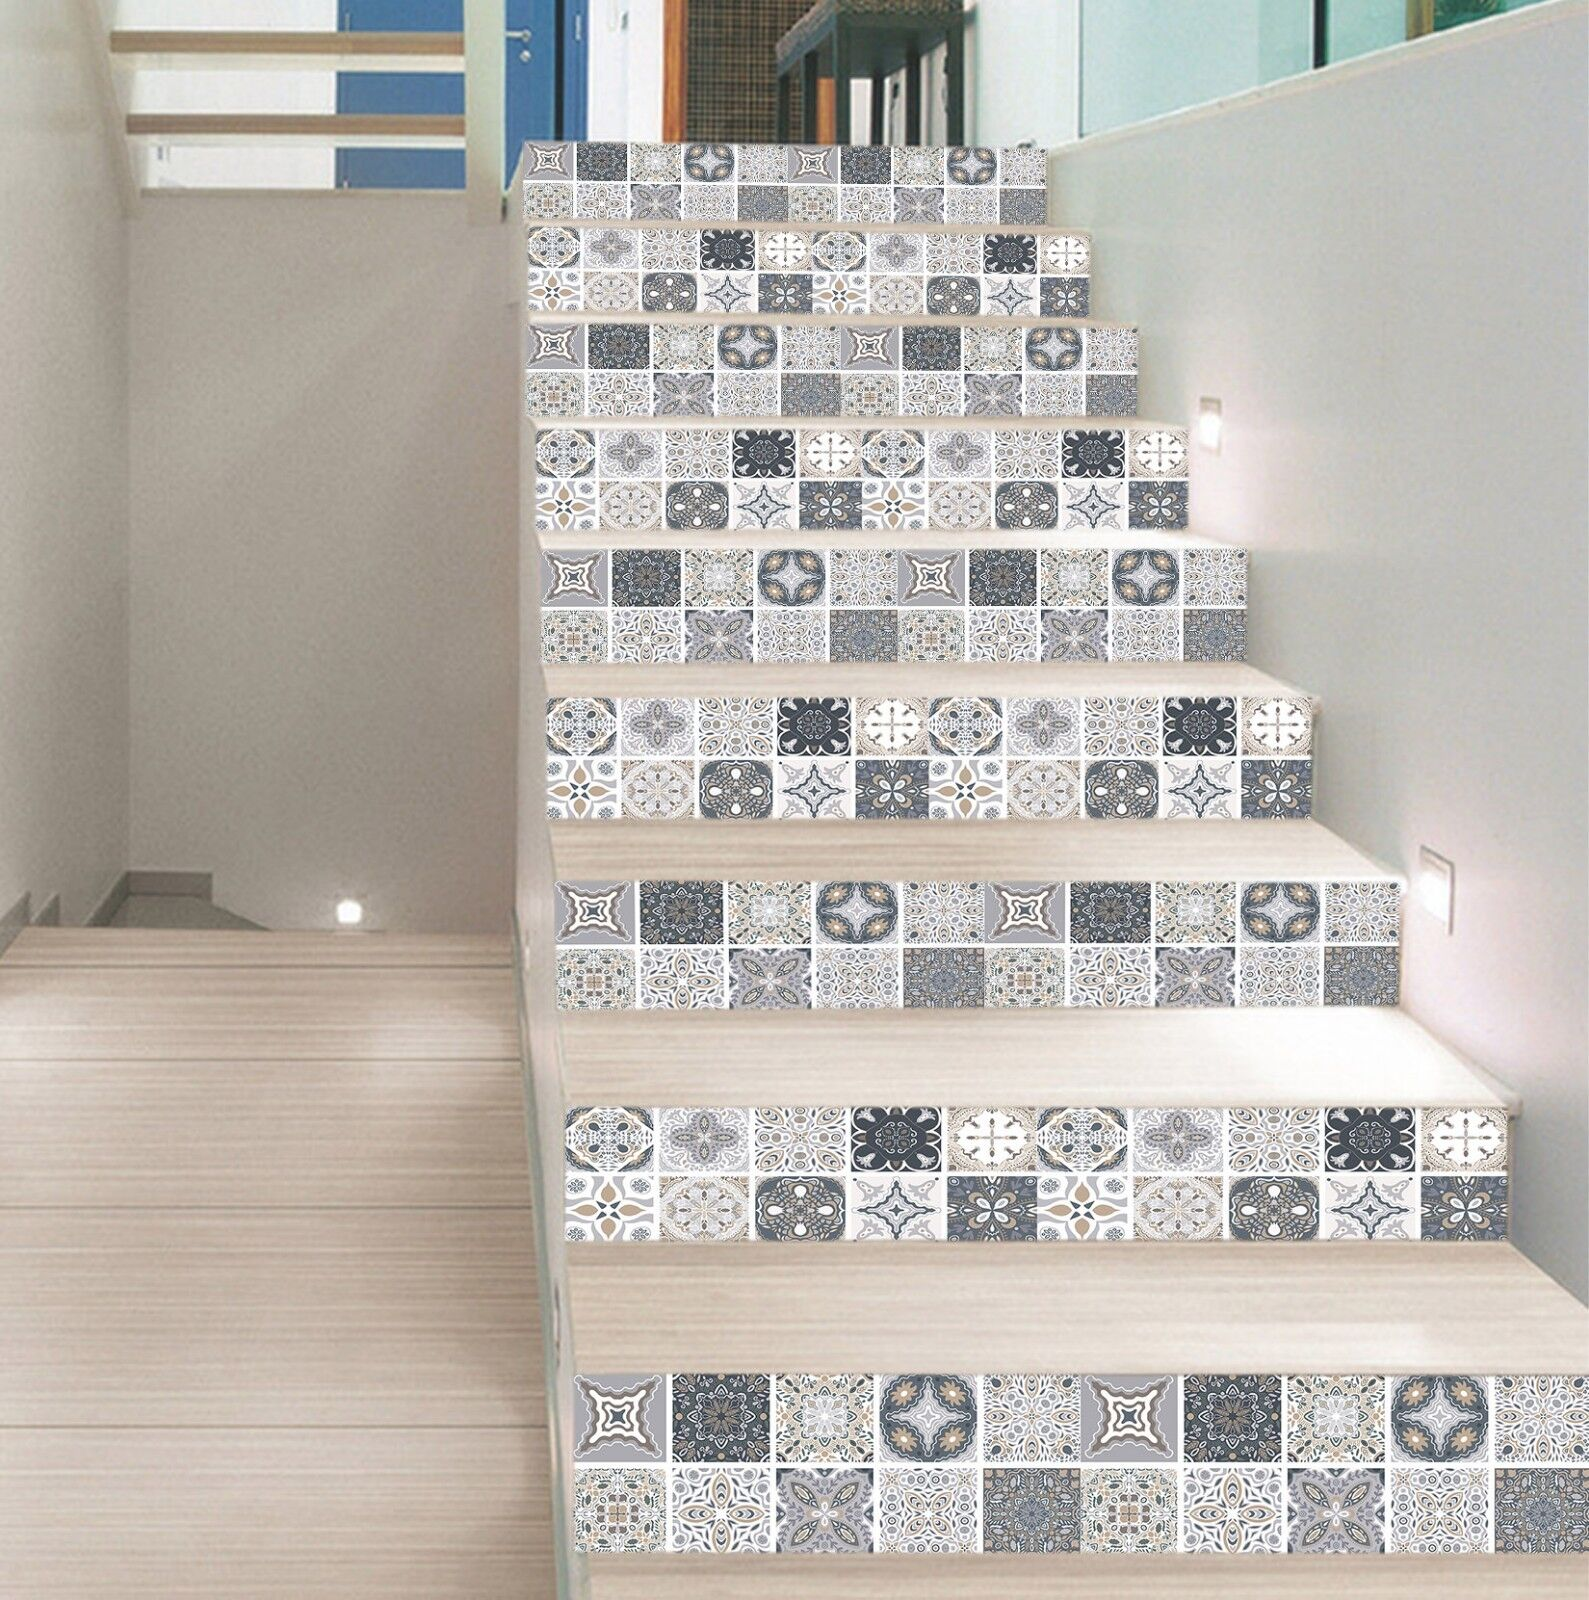 3D Complex Pattern 89 Tile Marble Stair Risers Photo Mural Vinyl Decal Wallpaper